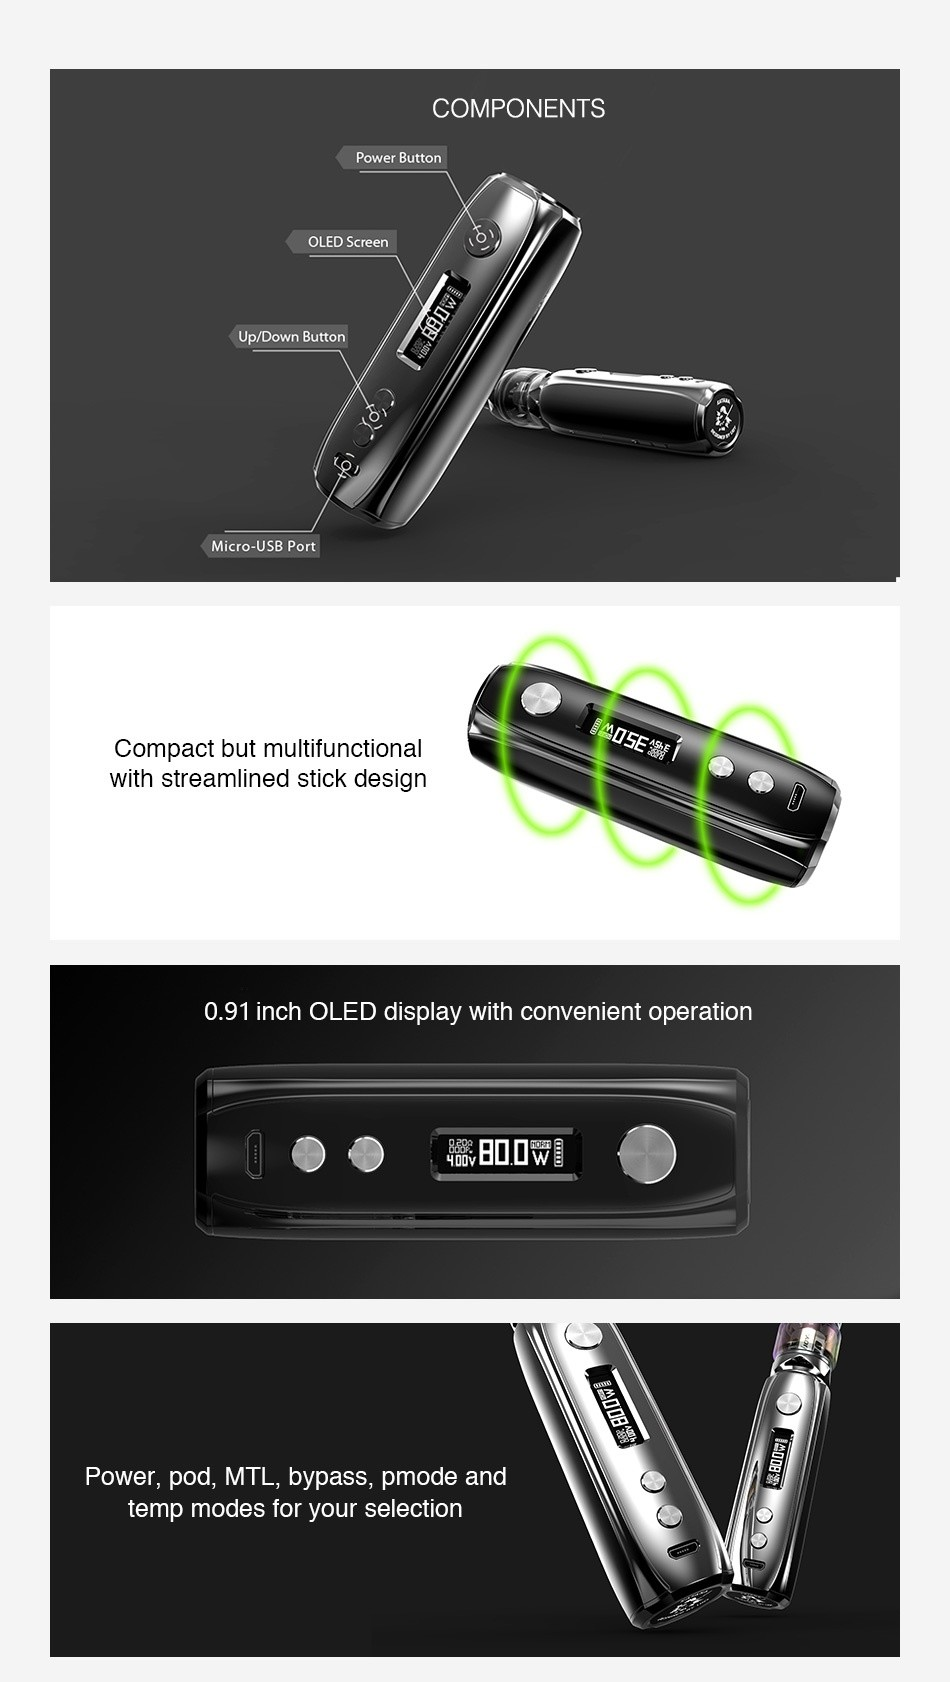 IJOY Katana 81W TC MOD 3000mAh COMPONENTS Power Button OLED Screen Up Down Button Micro USB Port Compact but multifunction ith streamlined stick design 0  91 inch OLEd display with convenient operation 0      ower  pod  MTL  bypass  pmode and temp modes for your selection